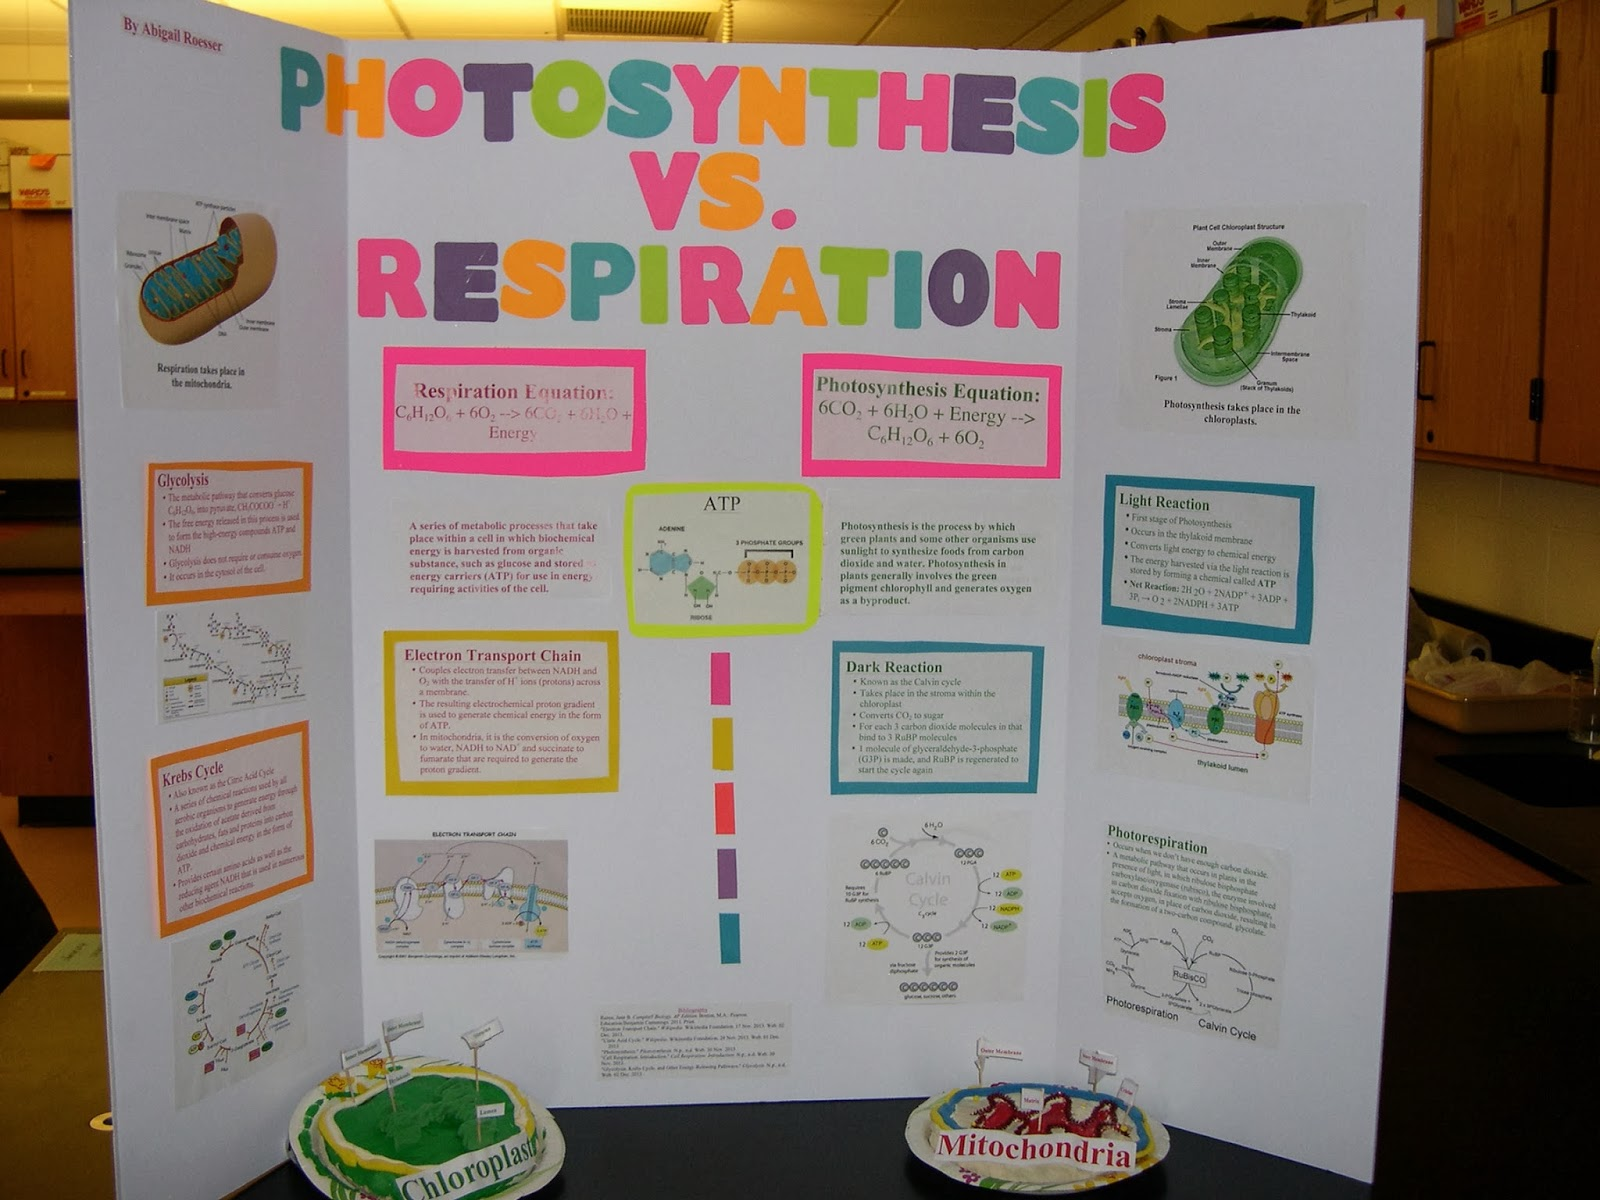 biology projects Looking for elementary science projects science4us provides free science projects as part of the array of resources available on our website.